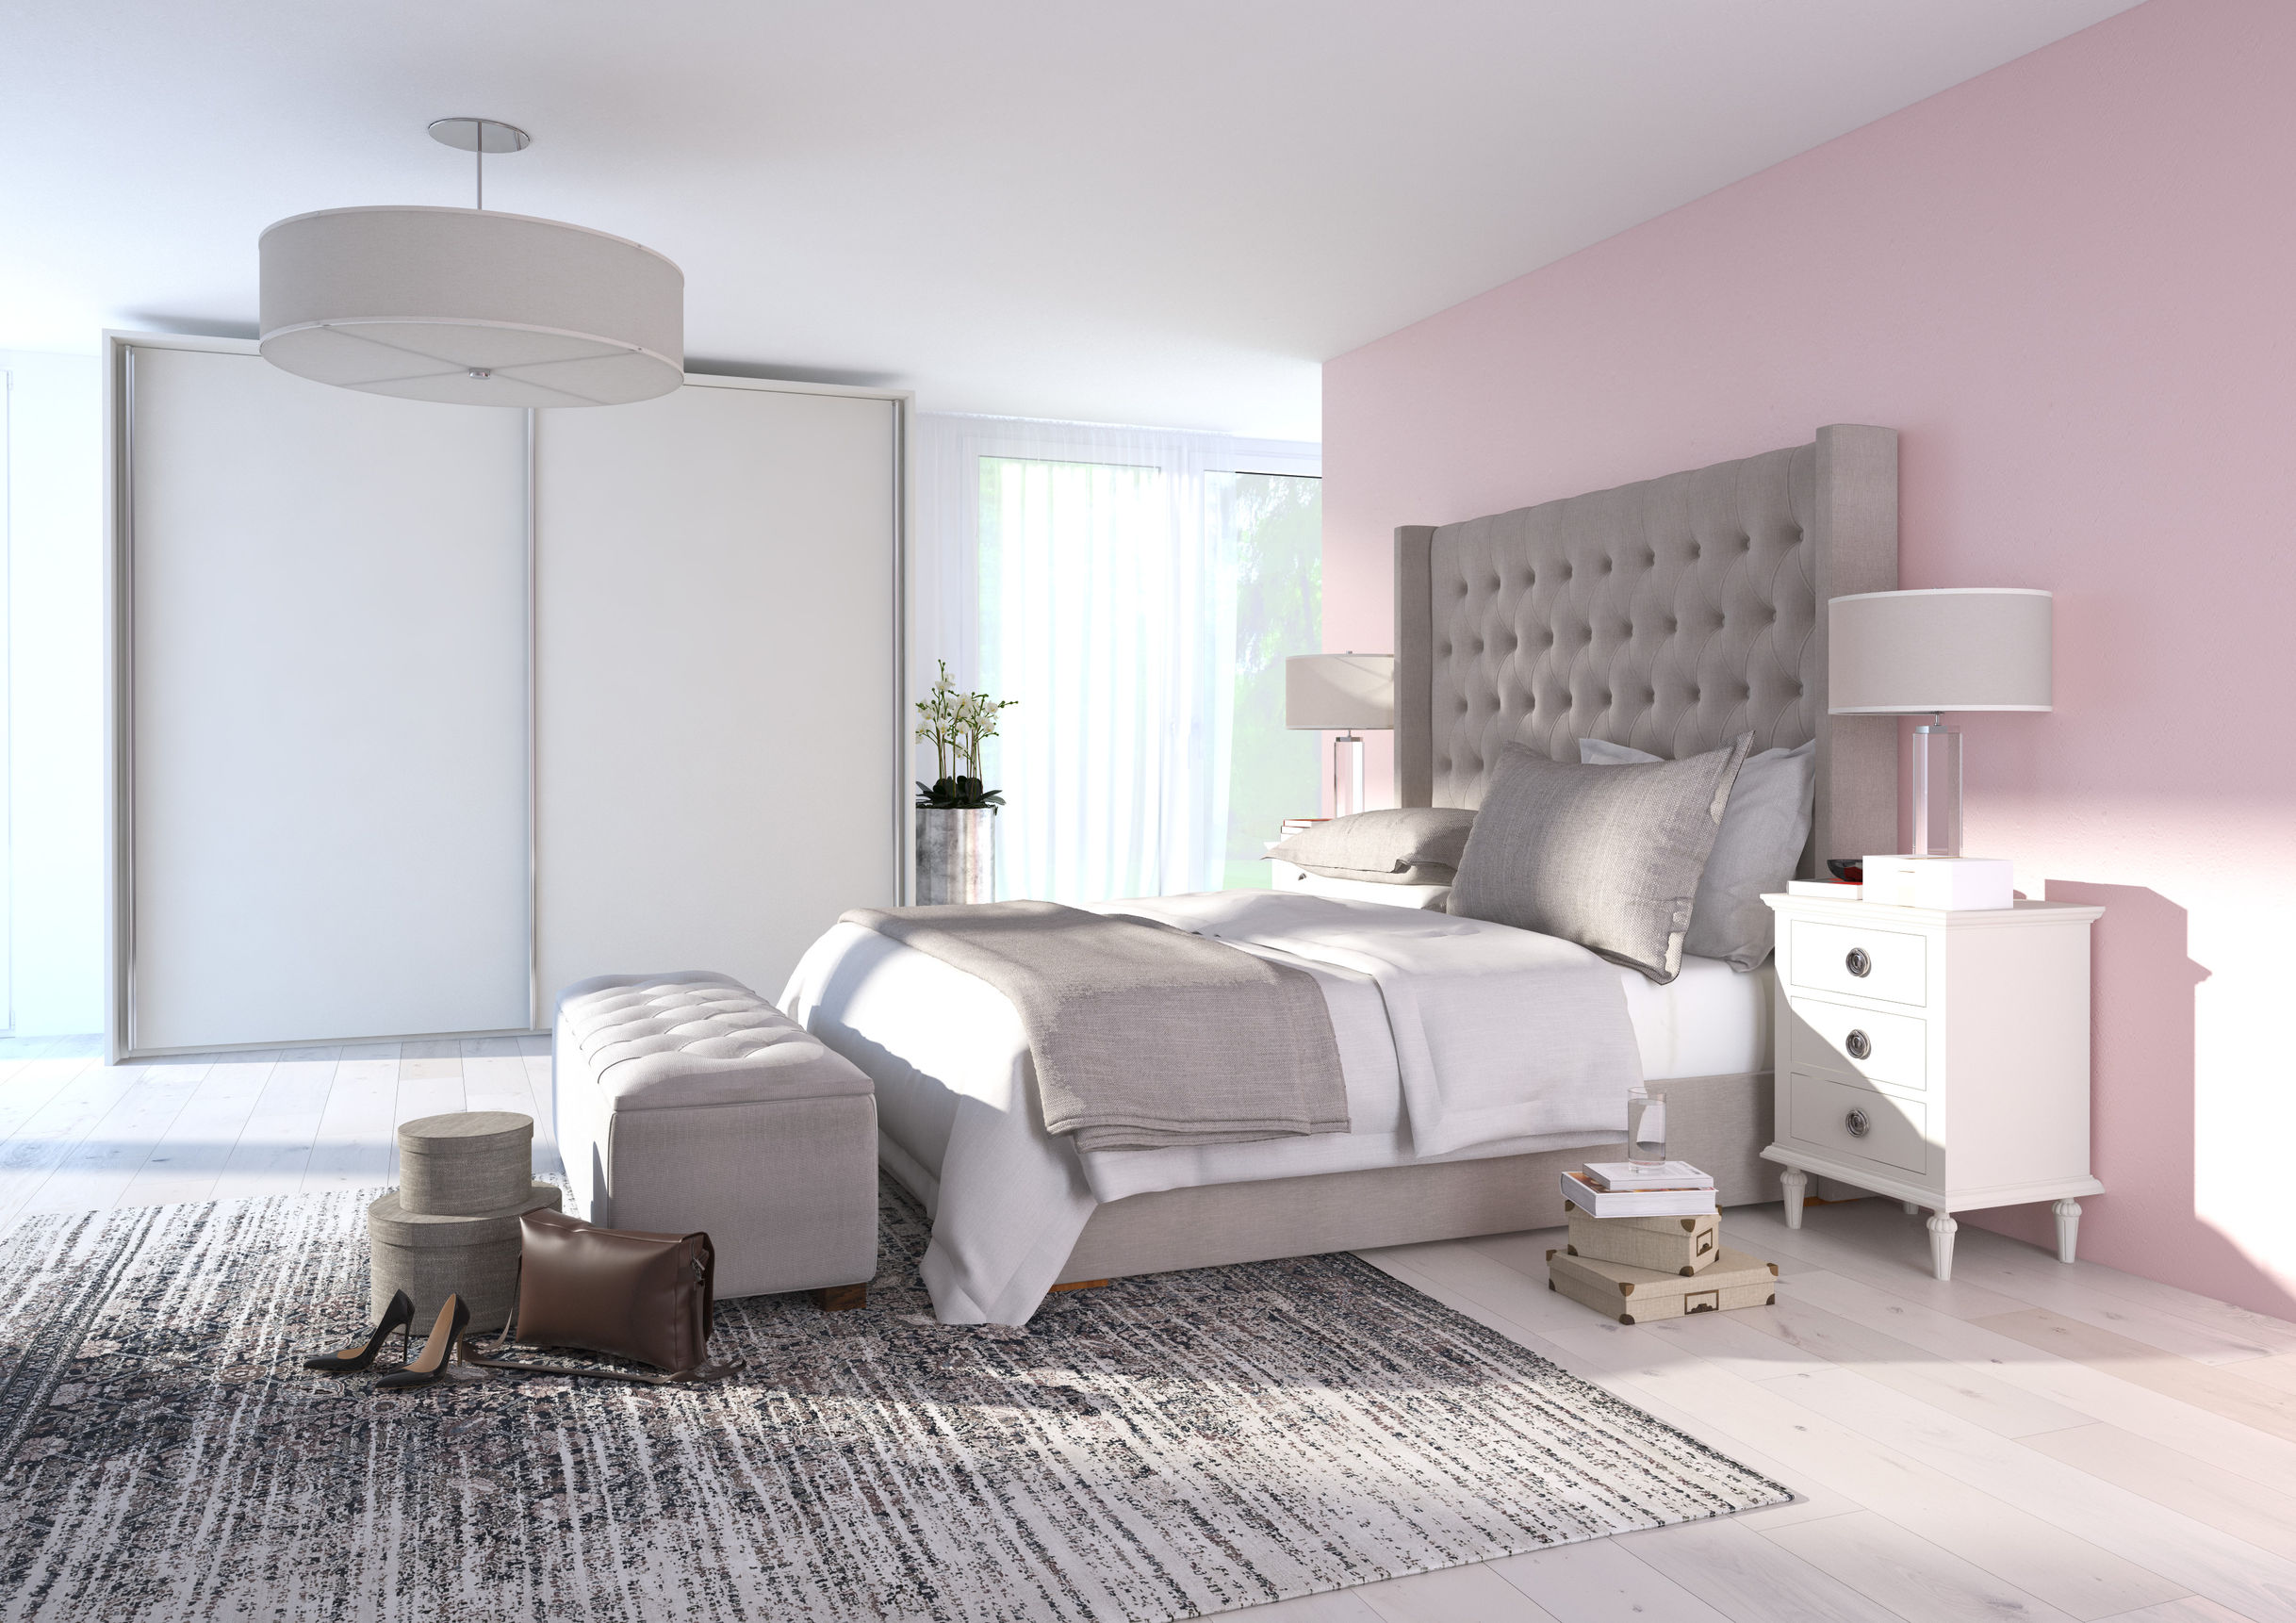 emejing chambre gris et rose poudre gallery design. Black Bedroom Furniture Sets. Home Design Ideas